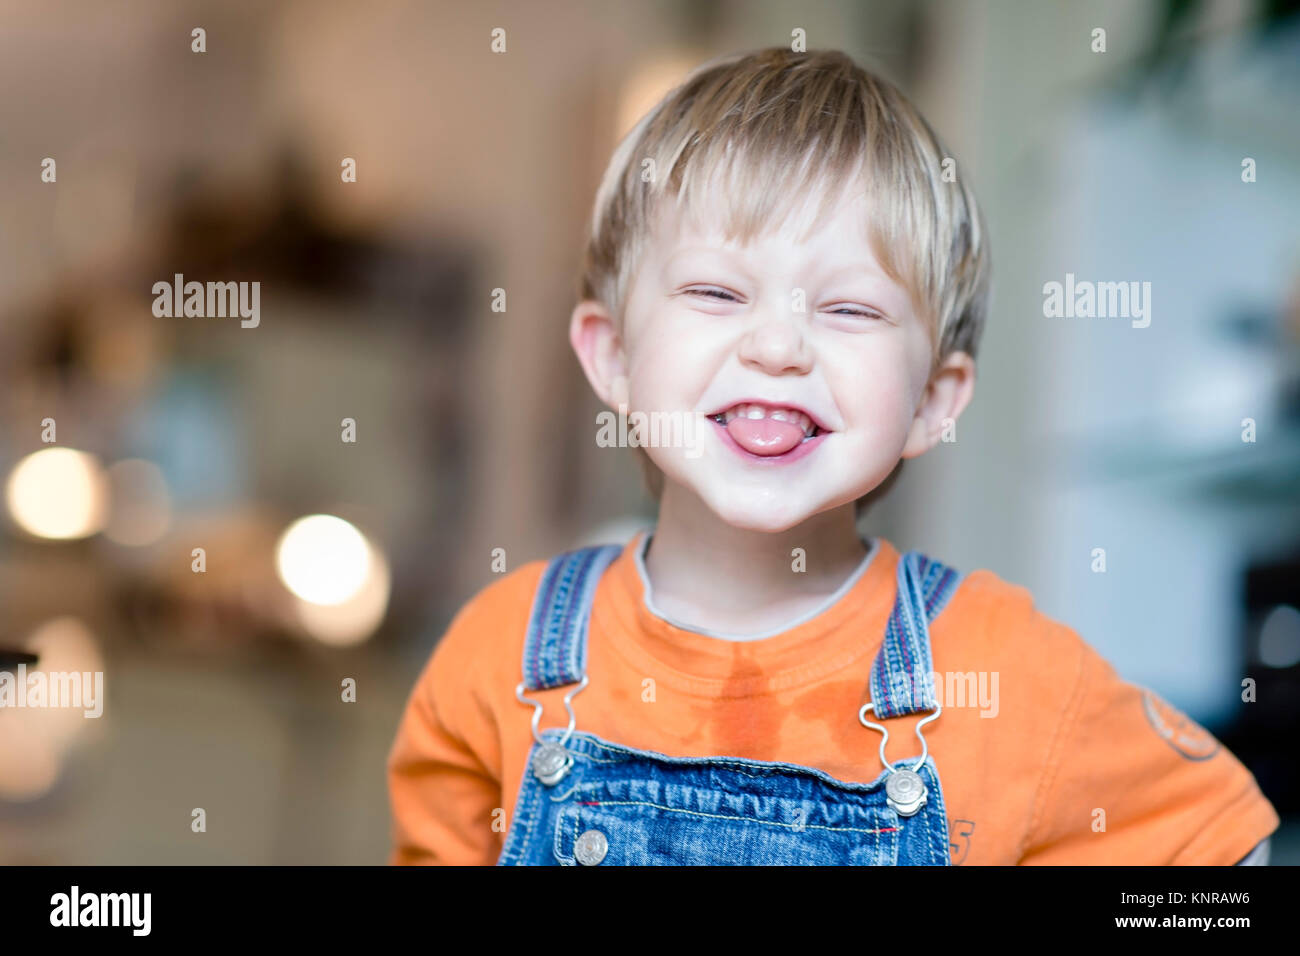 Froehlicher Junge, 4 Jahre - laughing little boy, 4 years old Stock Photo